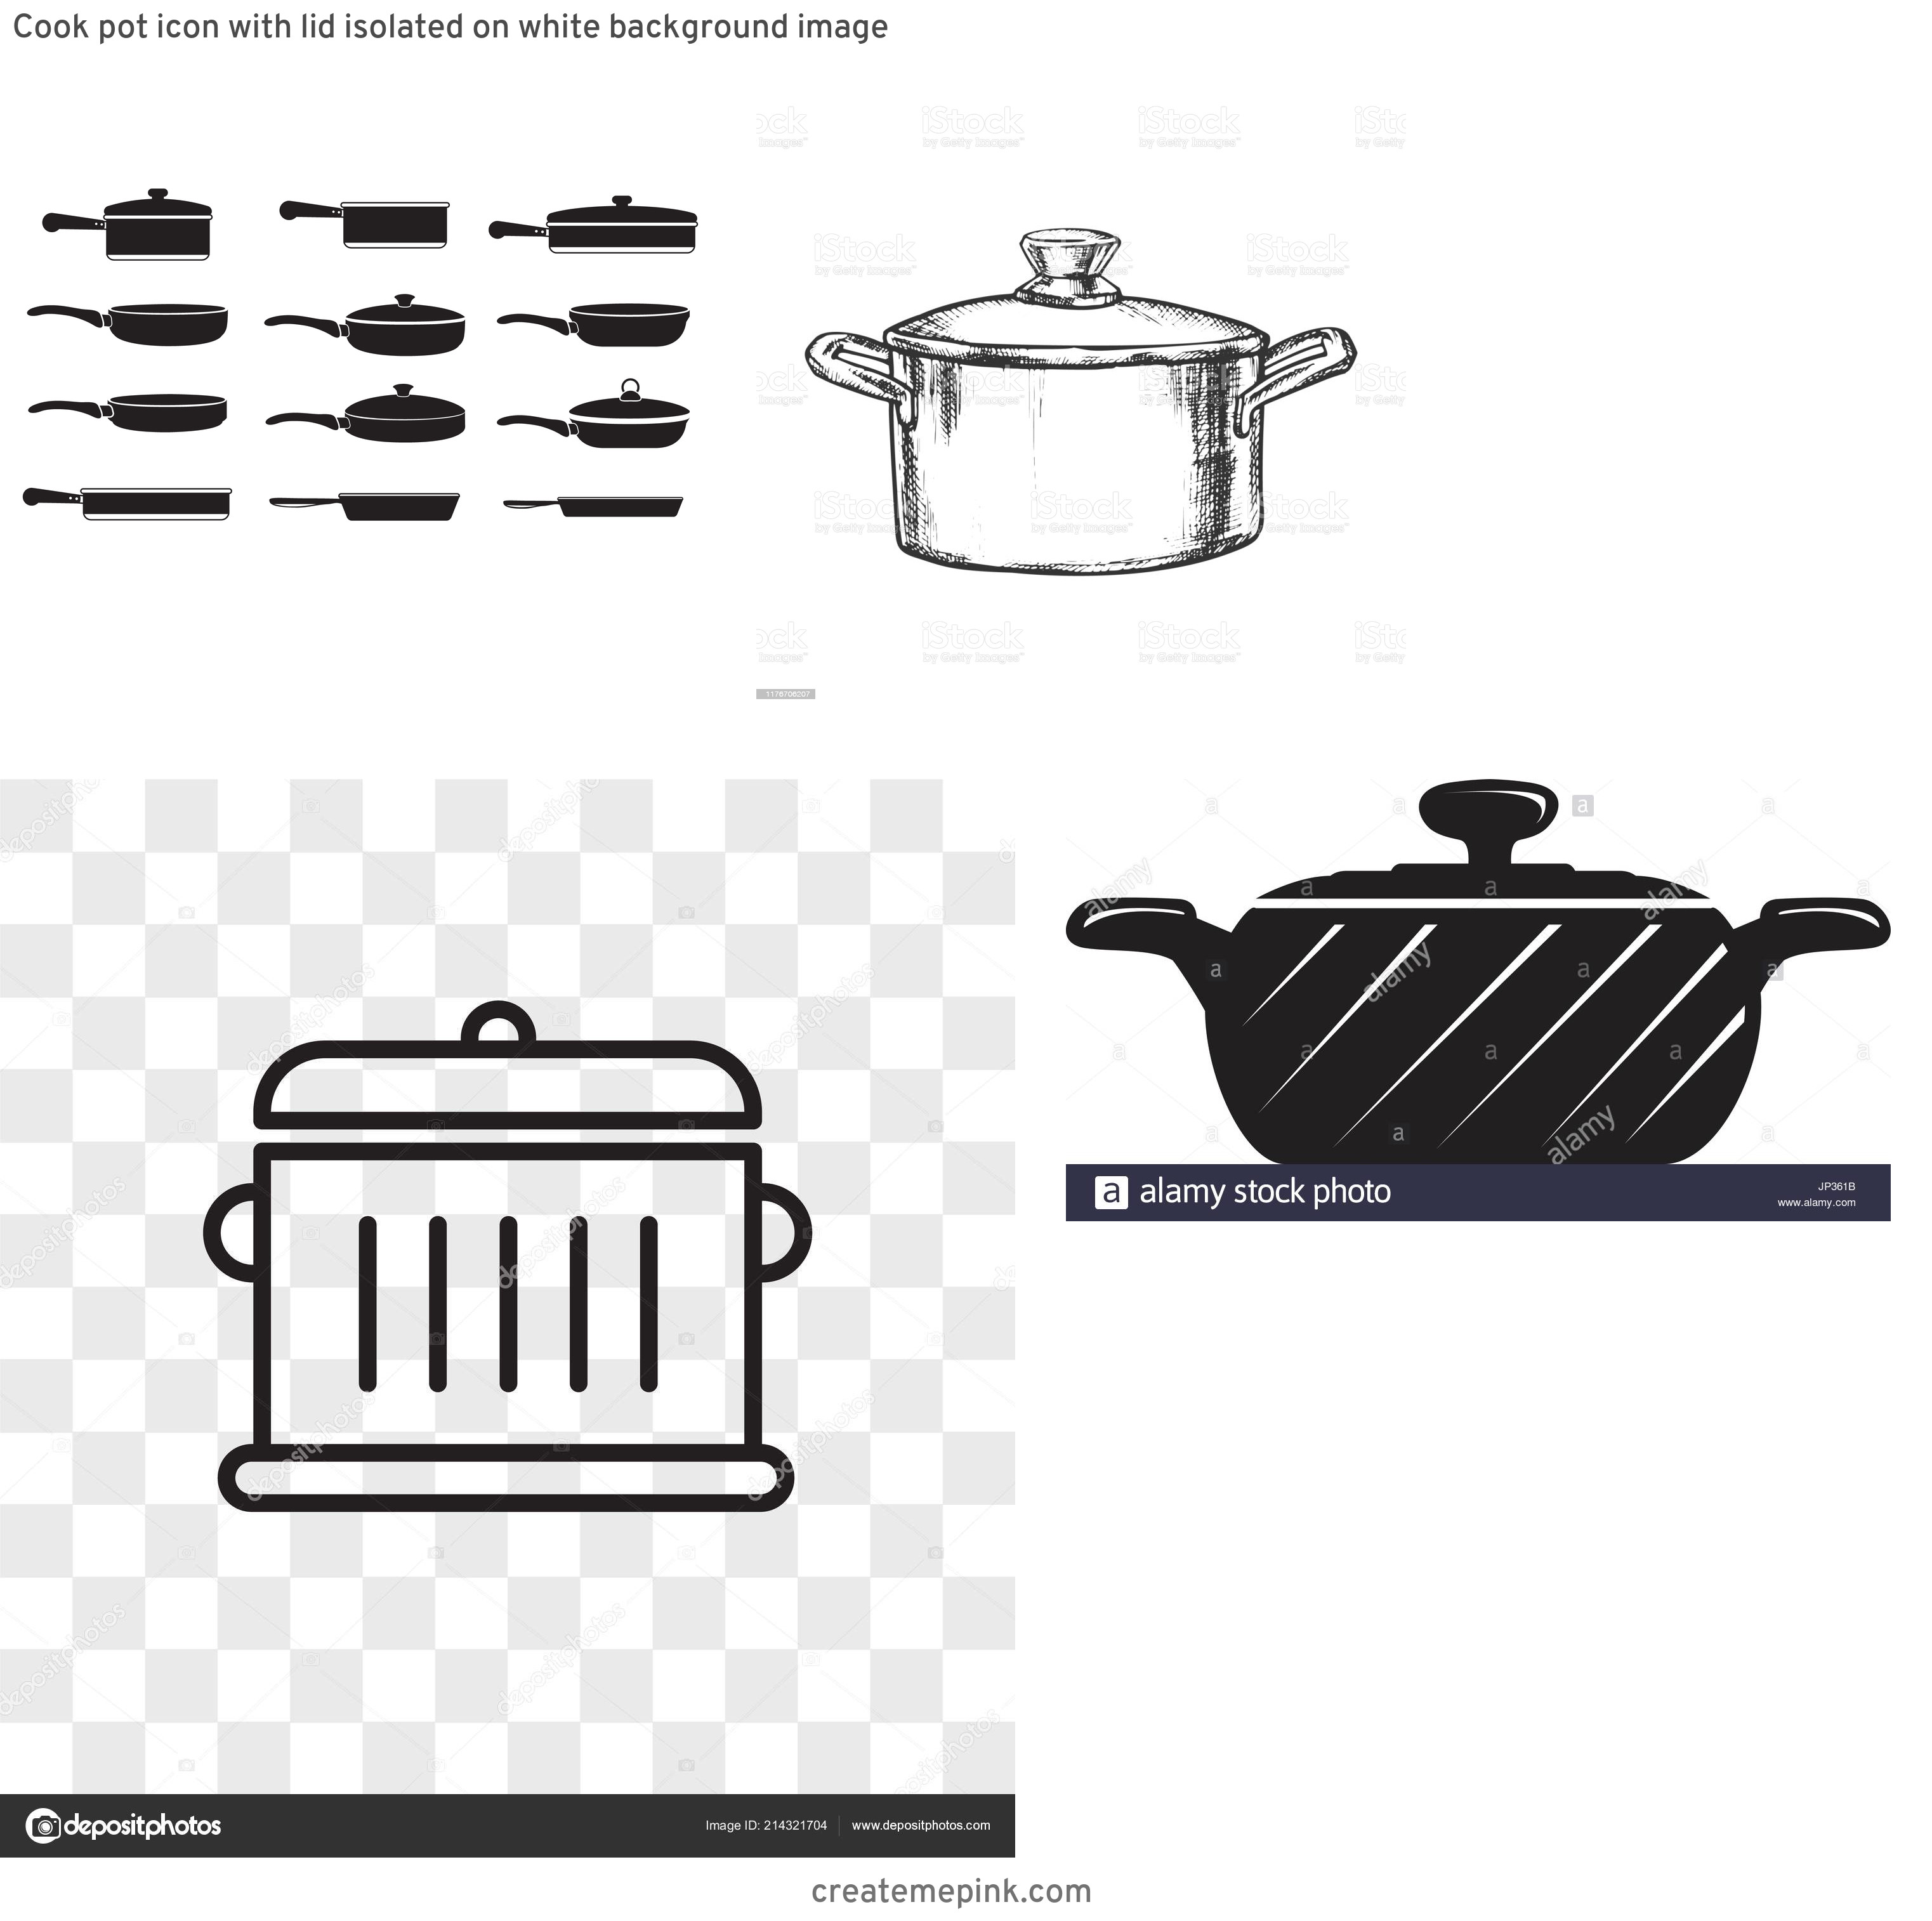 Cook Pot Vector: Cook Pot Icon With Lid Isolated On White Background Image